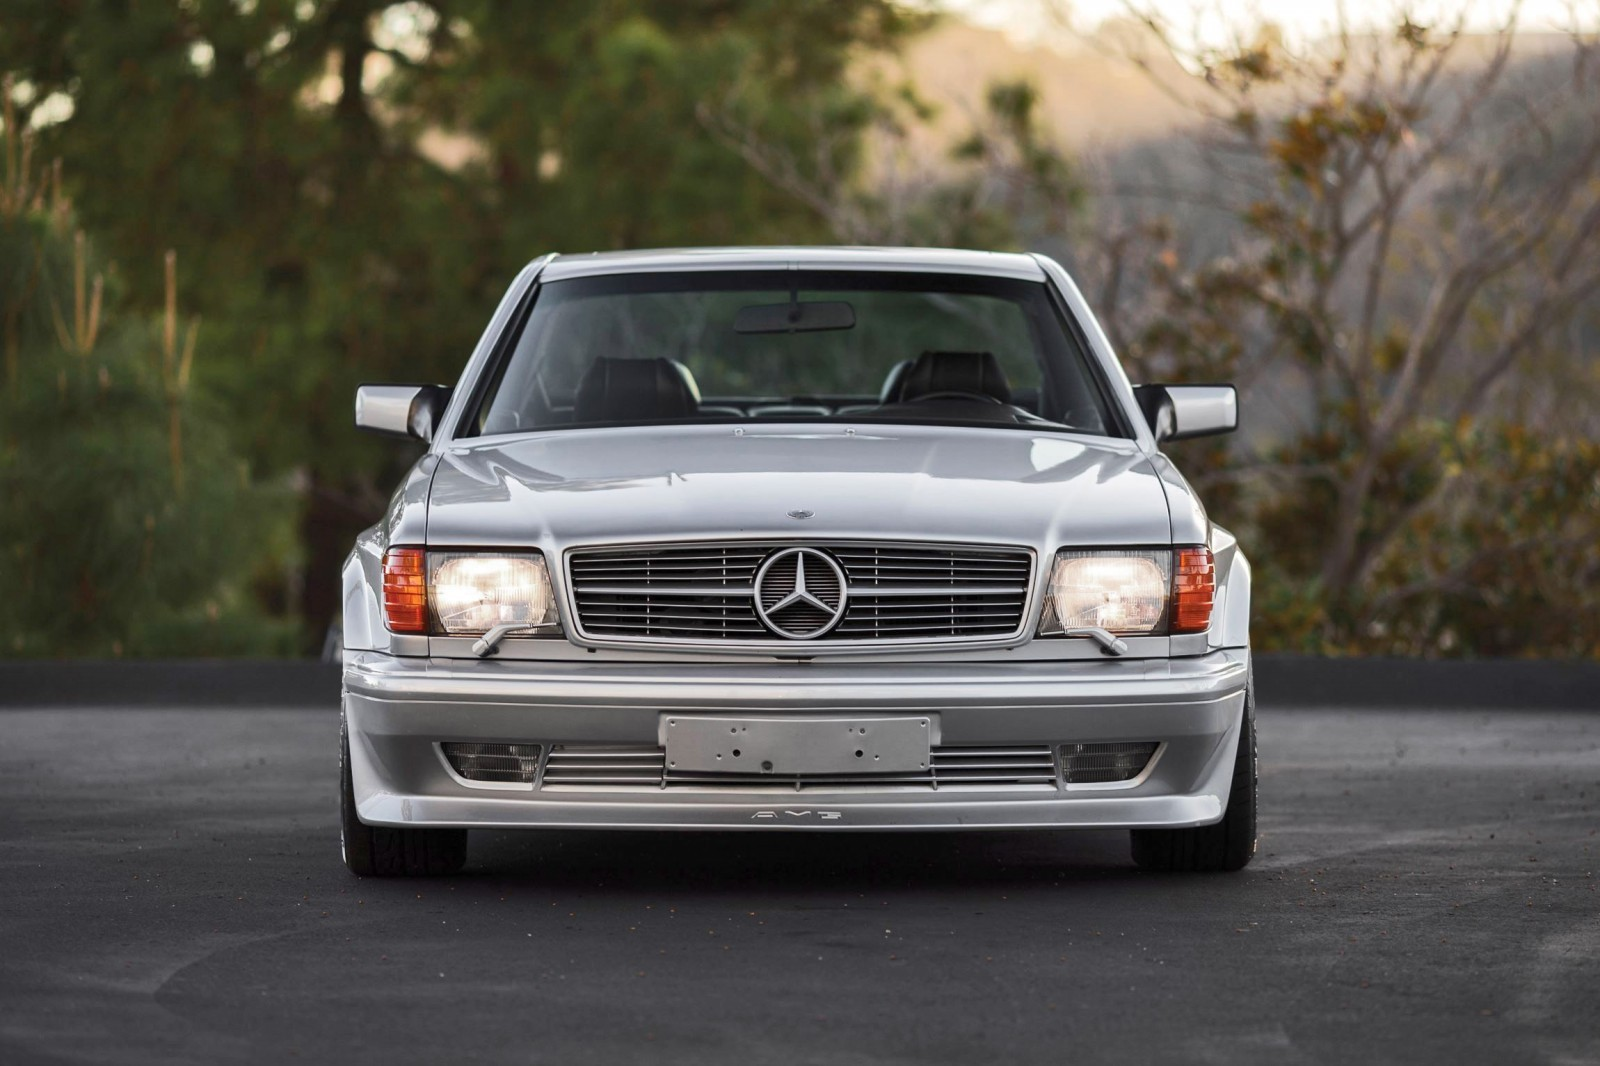 1989 Mercedes-Benz 560SEC 6 0 AMG Widebody Looks Ready for